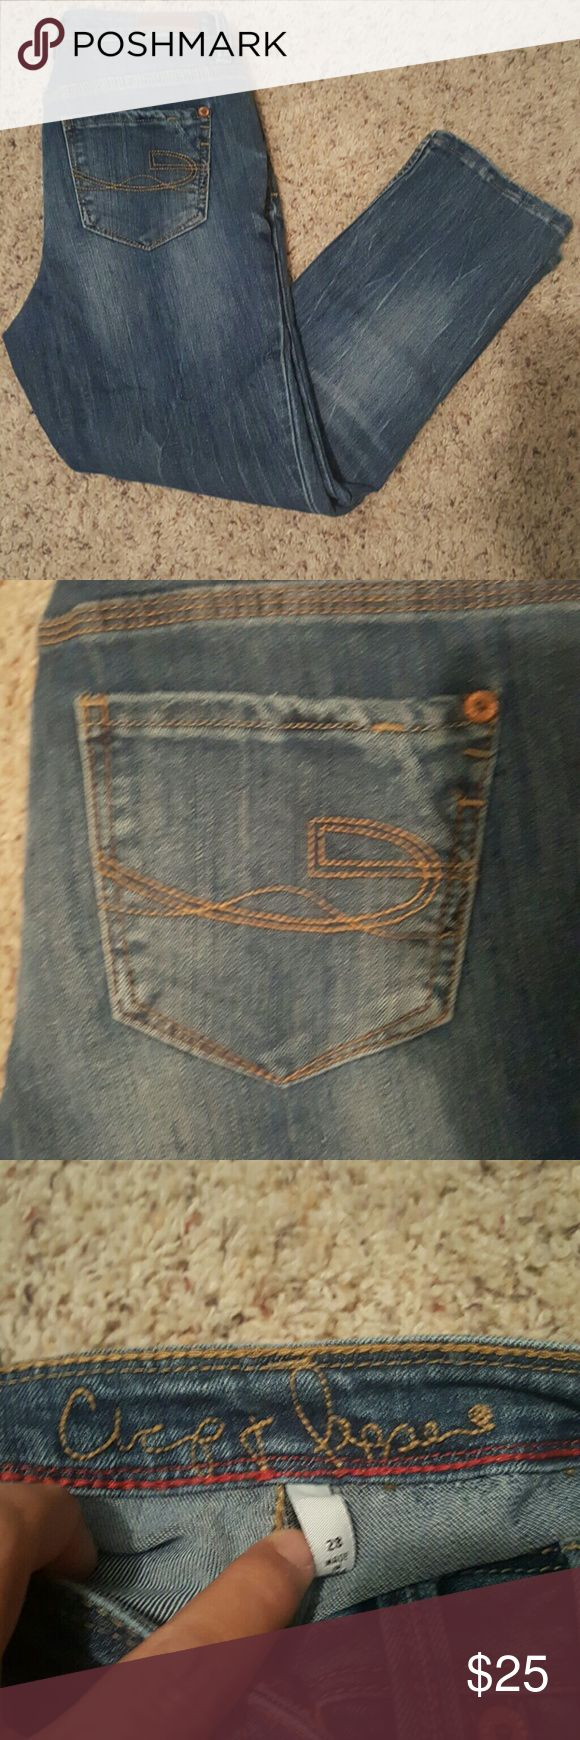 Jean capris Chip & Peppa jean capris Chip & Peppe Jeans Ankle & Cropped